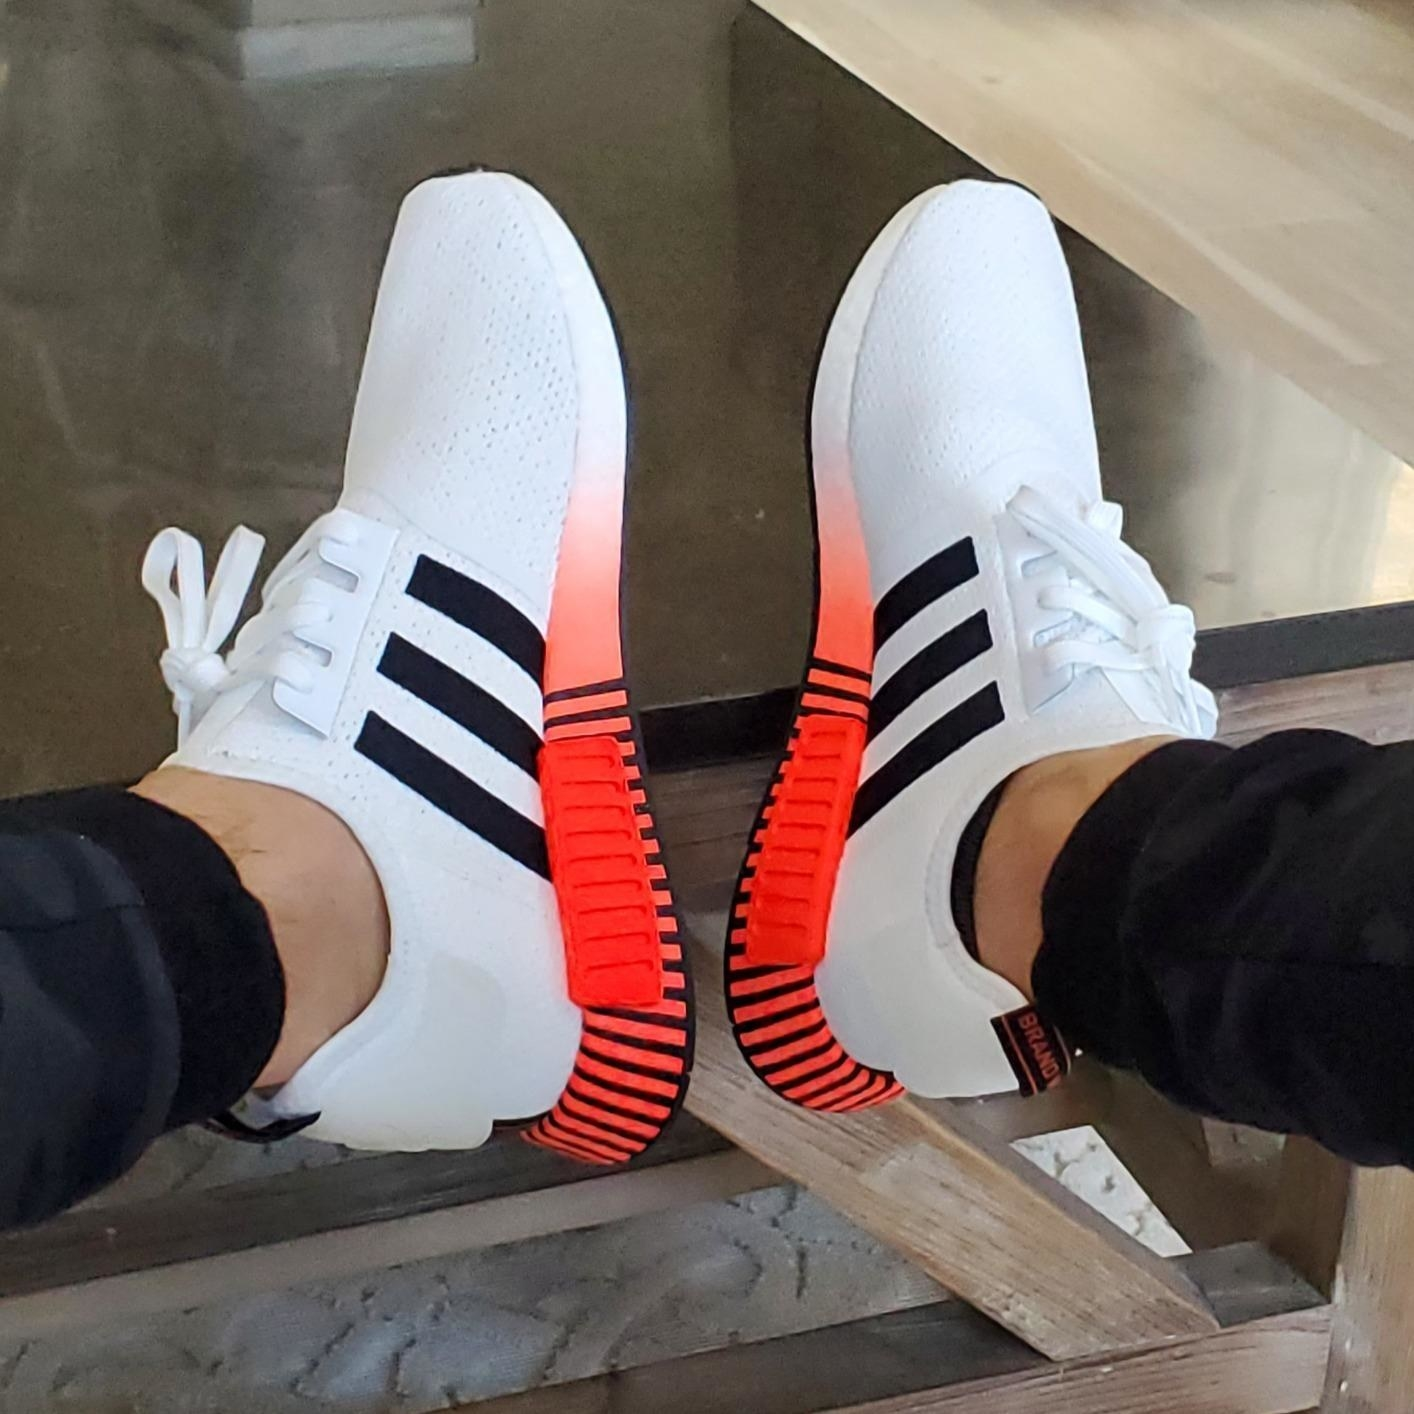 The shoes in white and orange